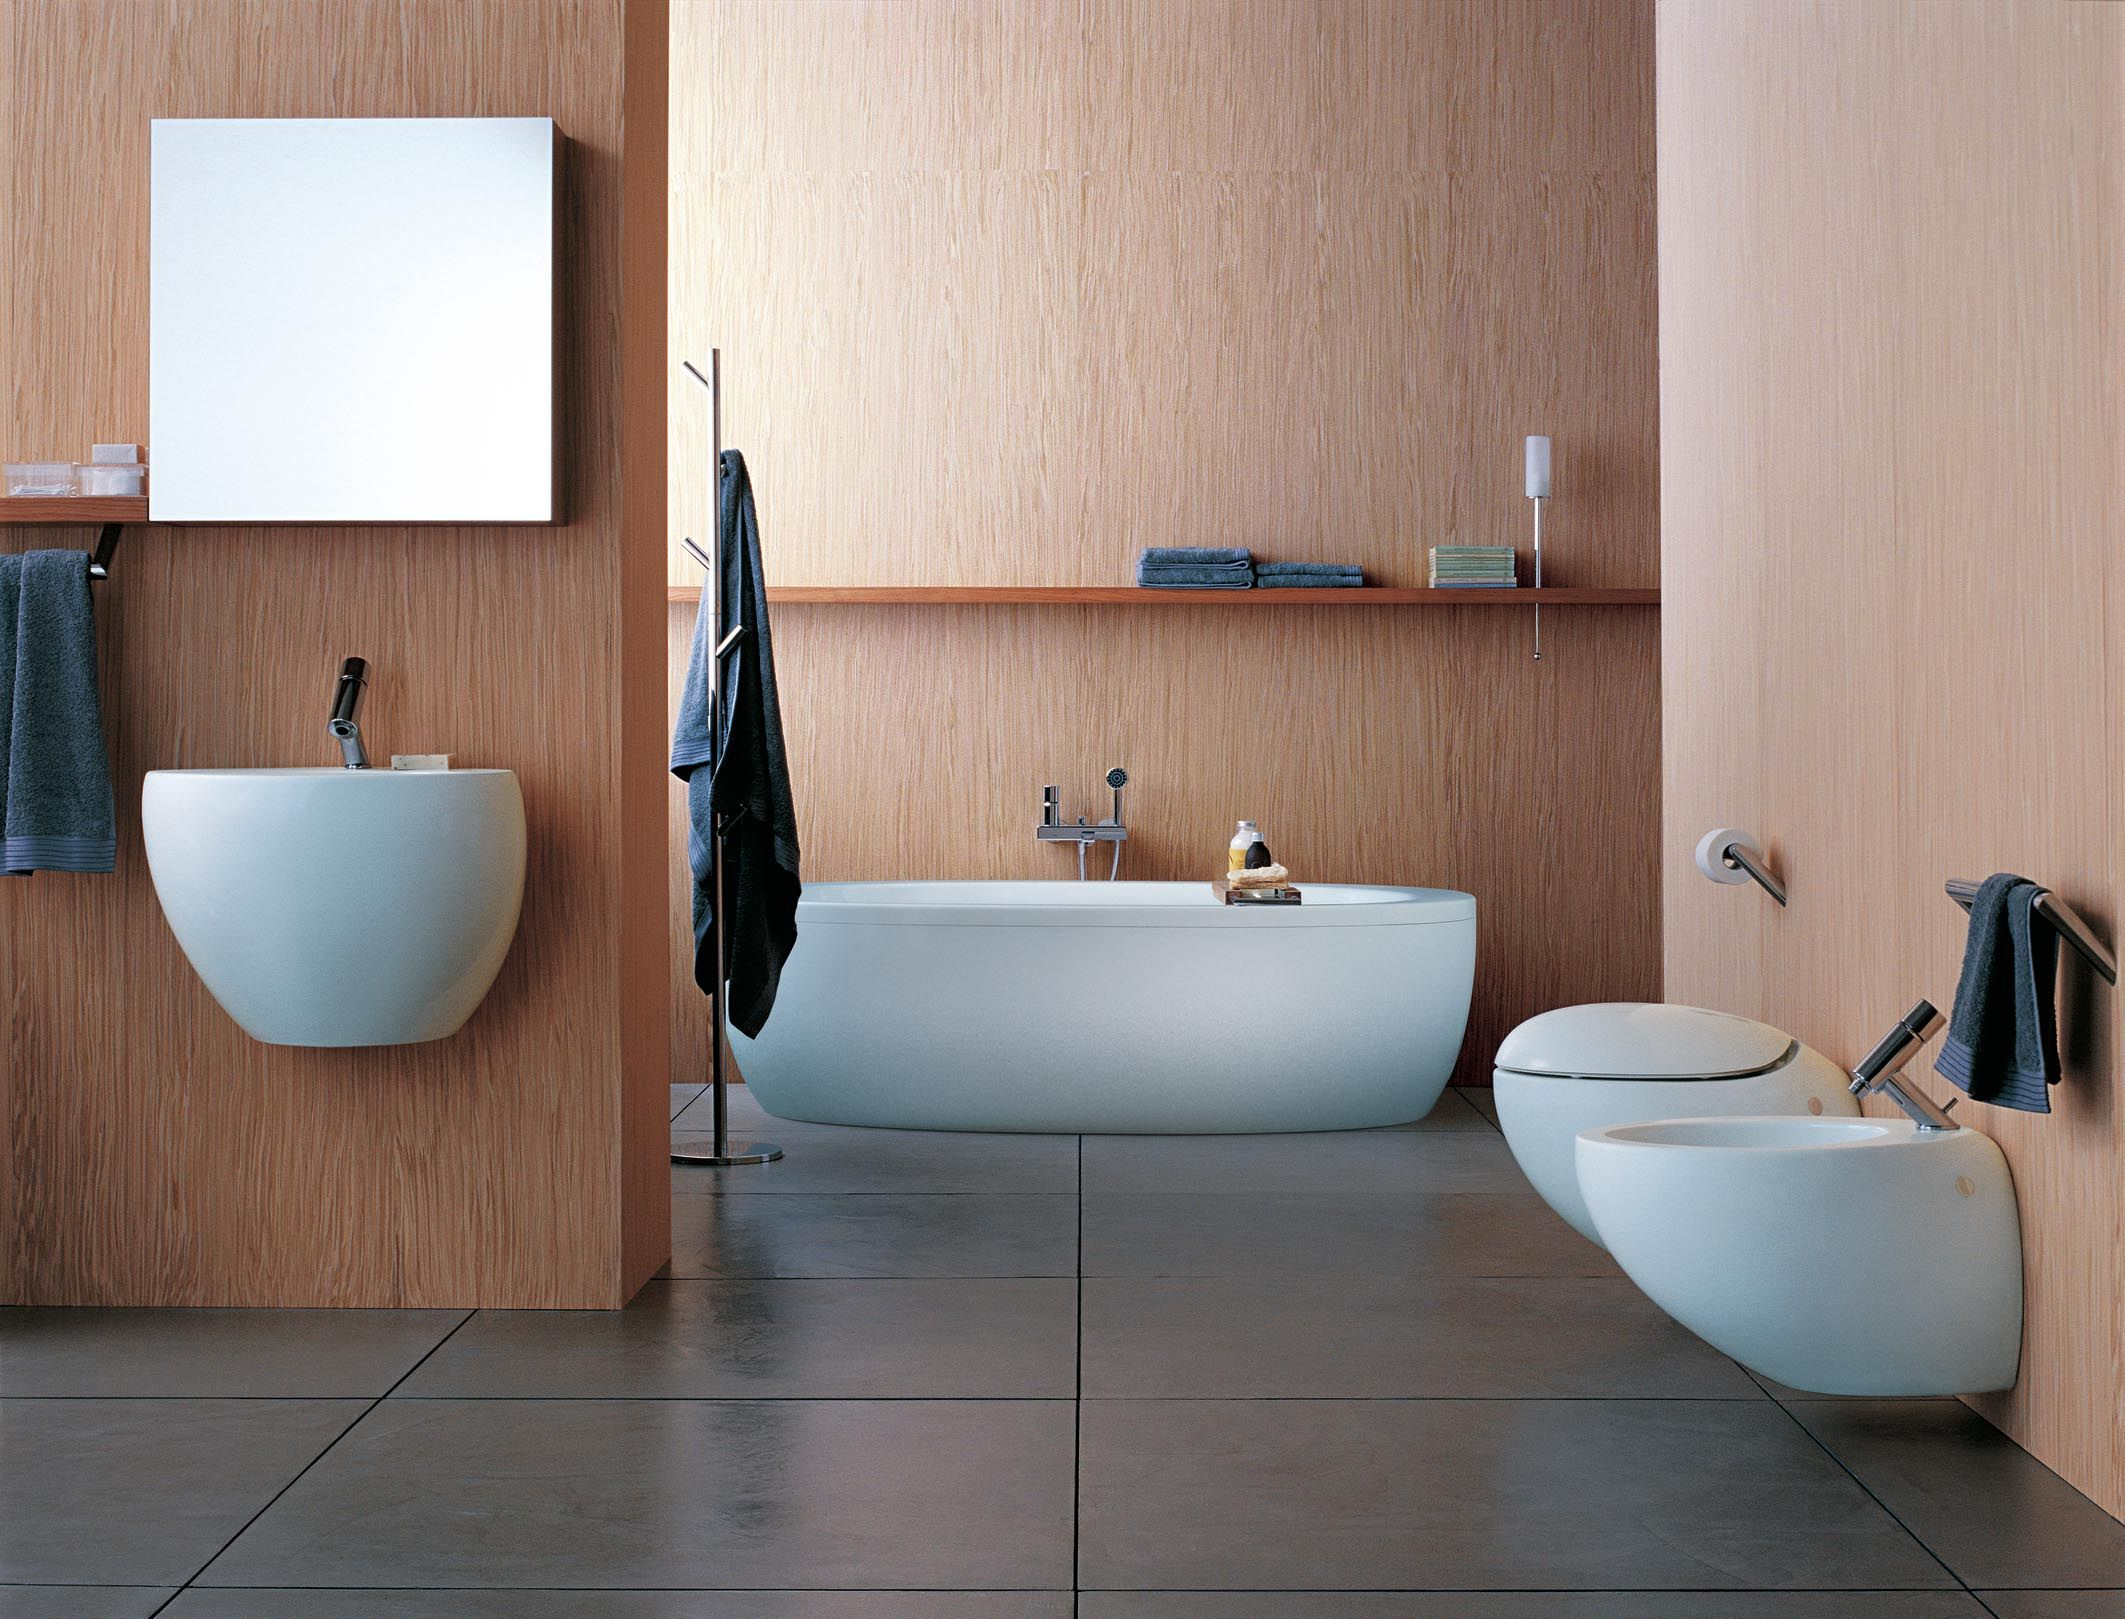 Wandfliese Natura Silk Exciting Italian Bathrooms Designs By White Bathup On The